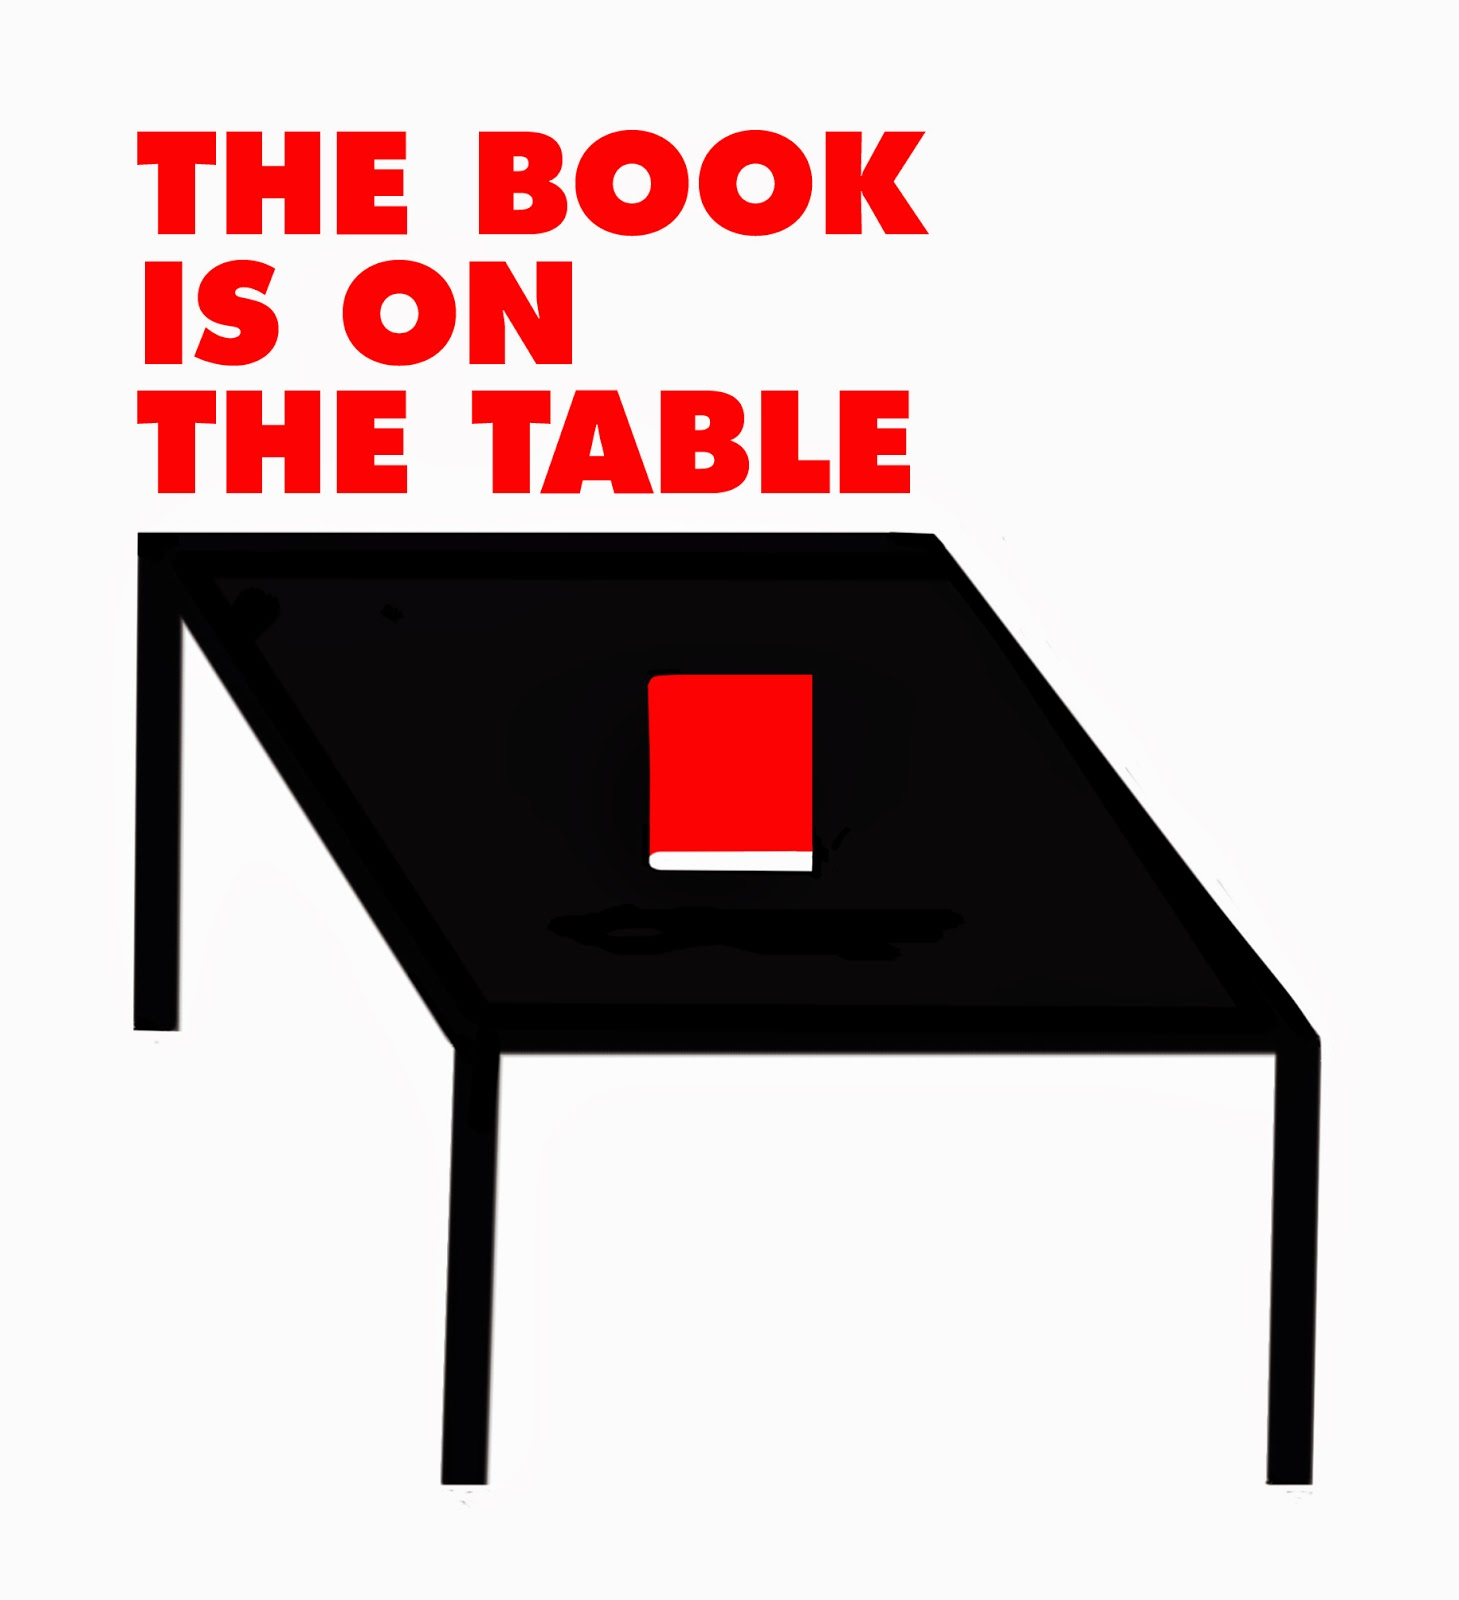 A The Book Is On The Table